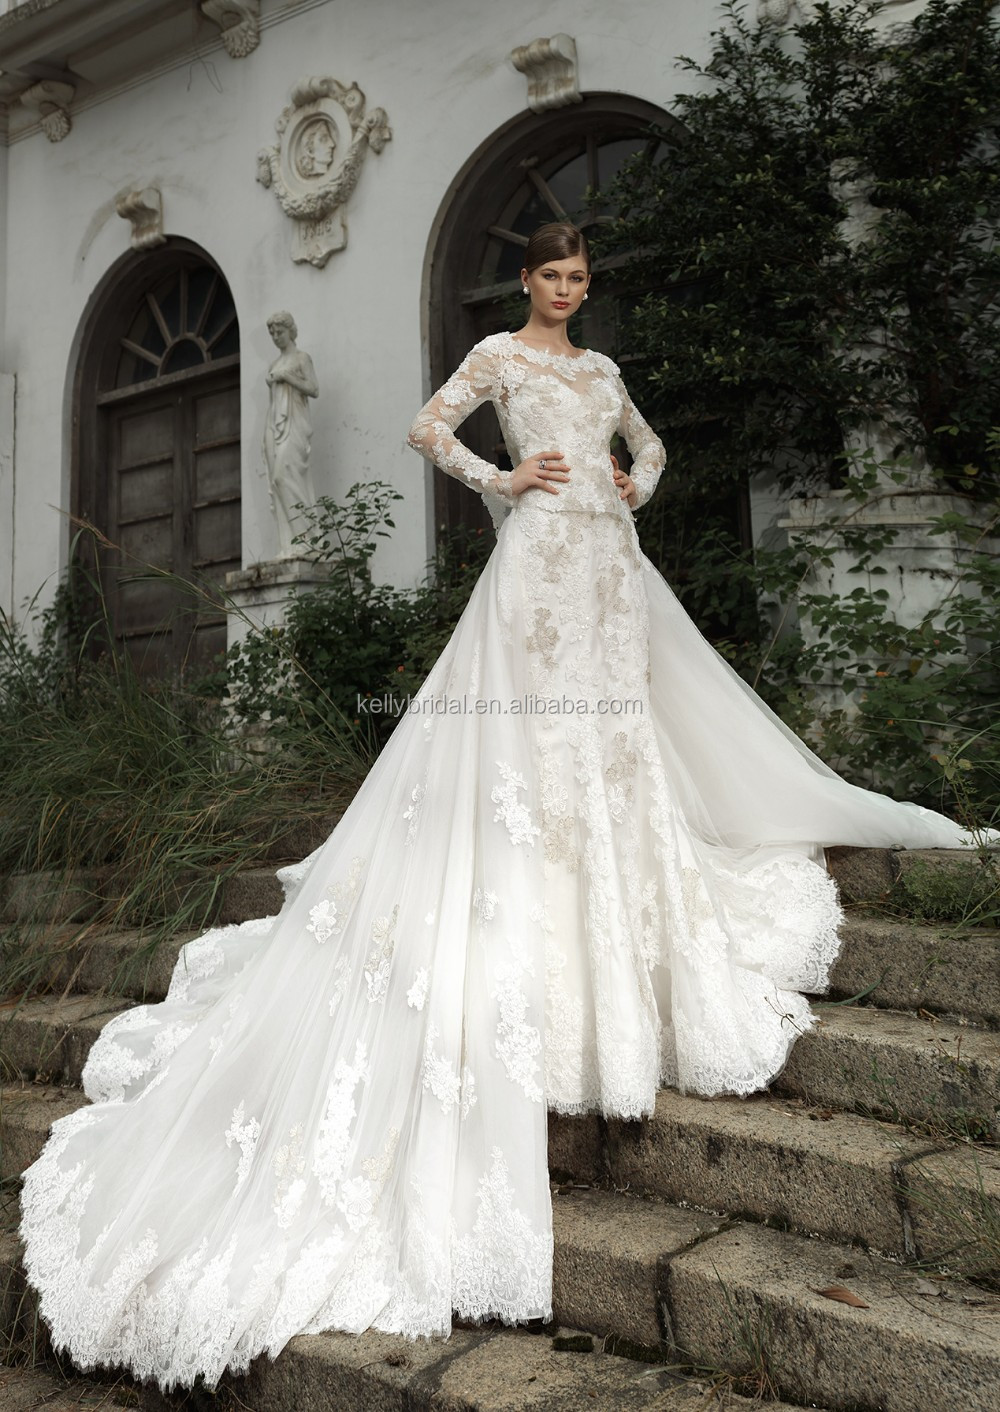 Zm16005 Custom Unique Wedding Dresses Bridal Gowns With High Neck ...